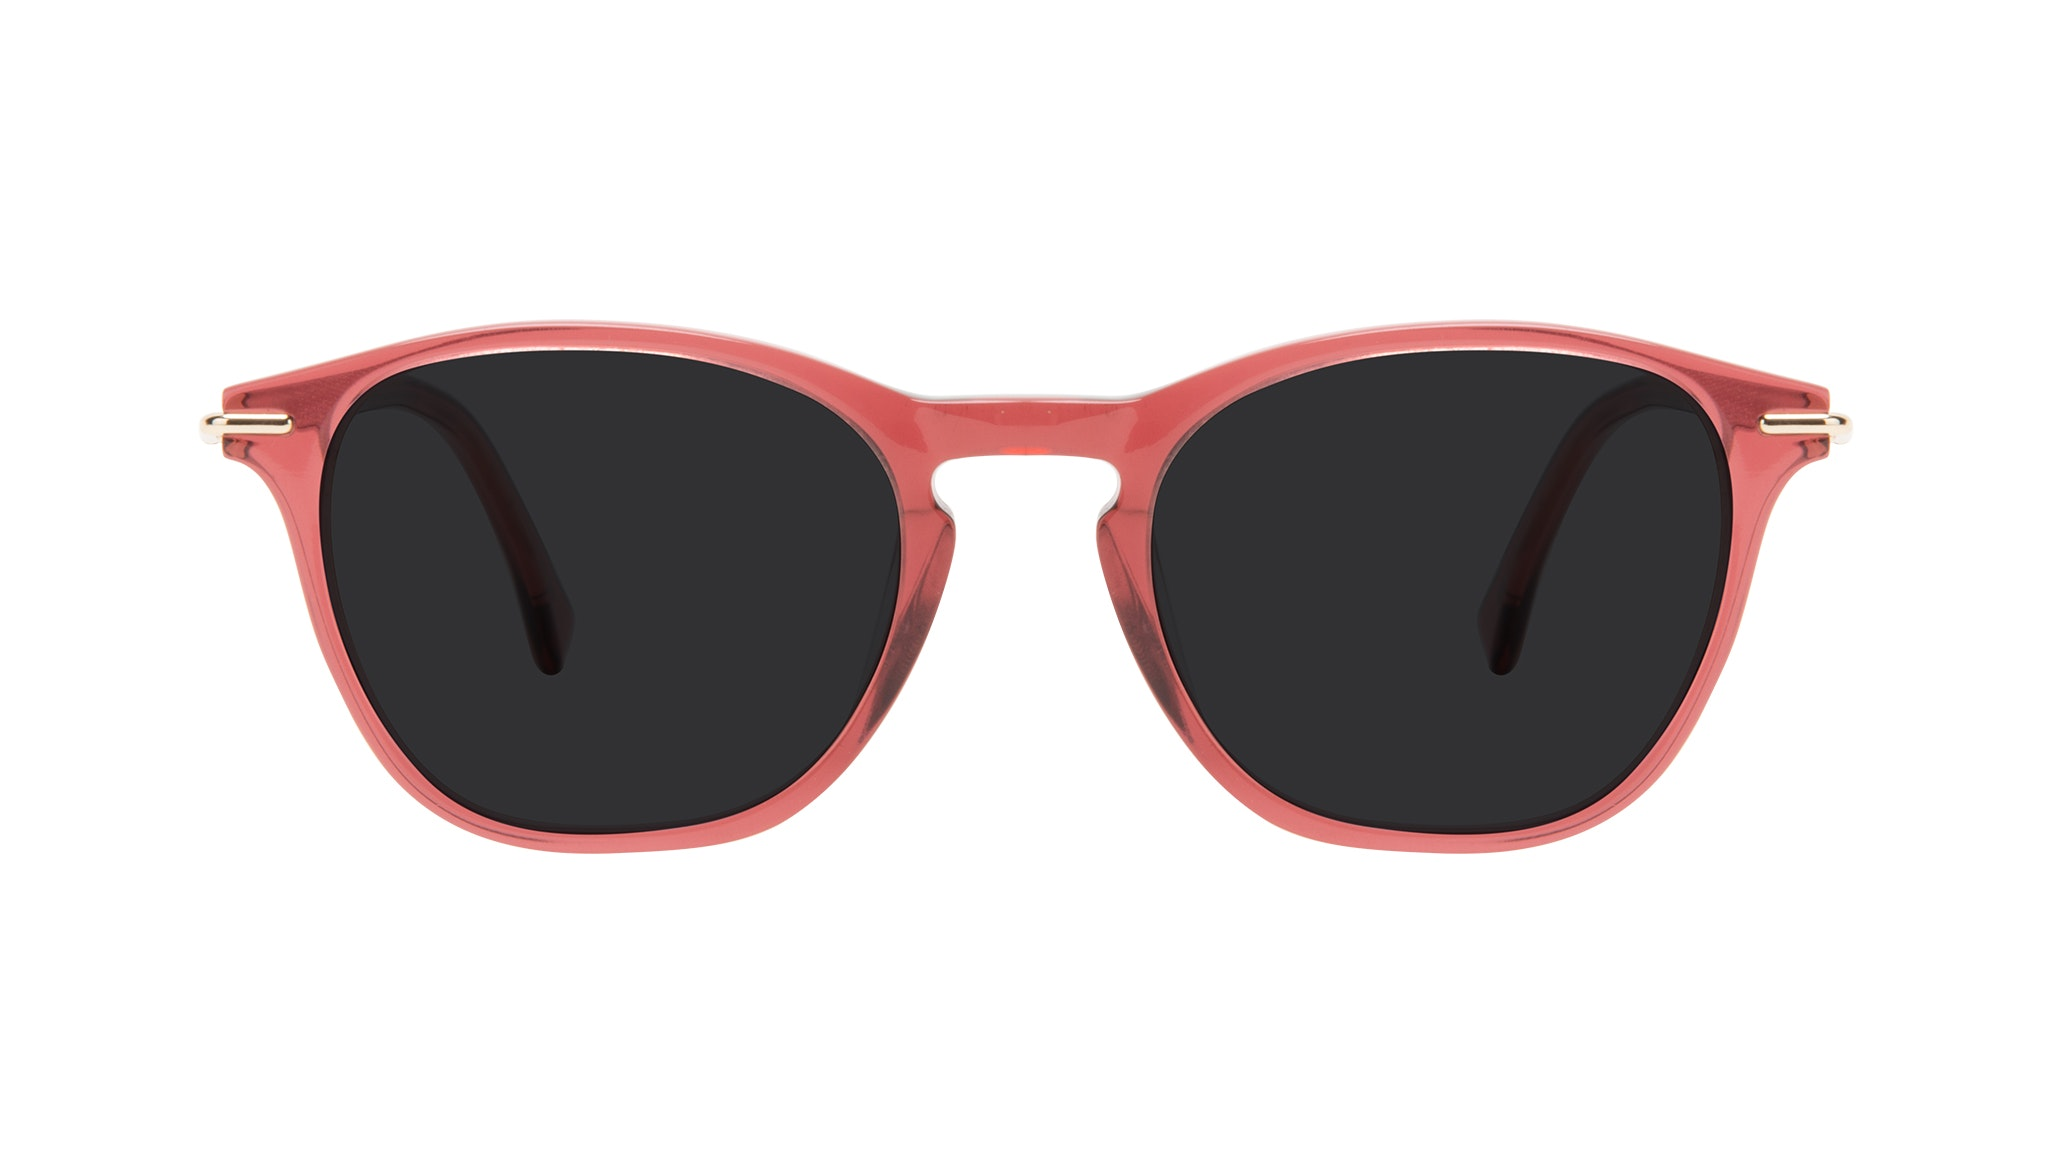 Affordable Fashion Glasses Square Sunglasses Women Charming Cherry Front